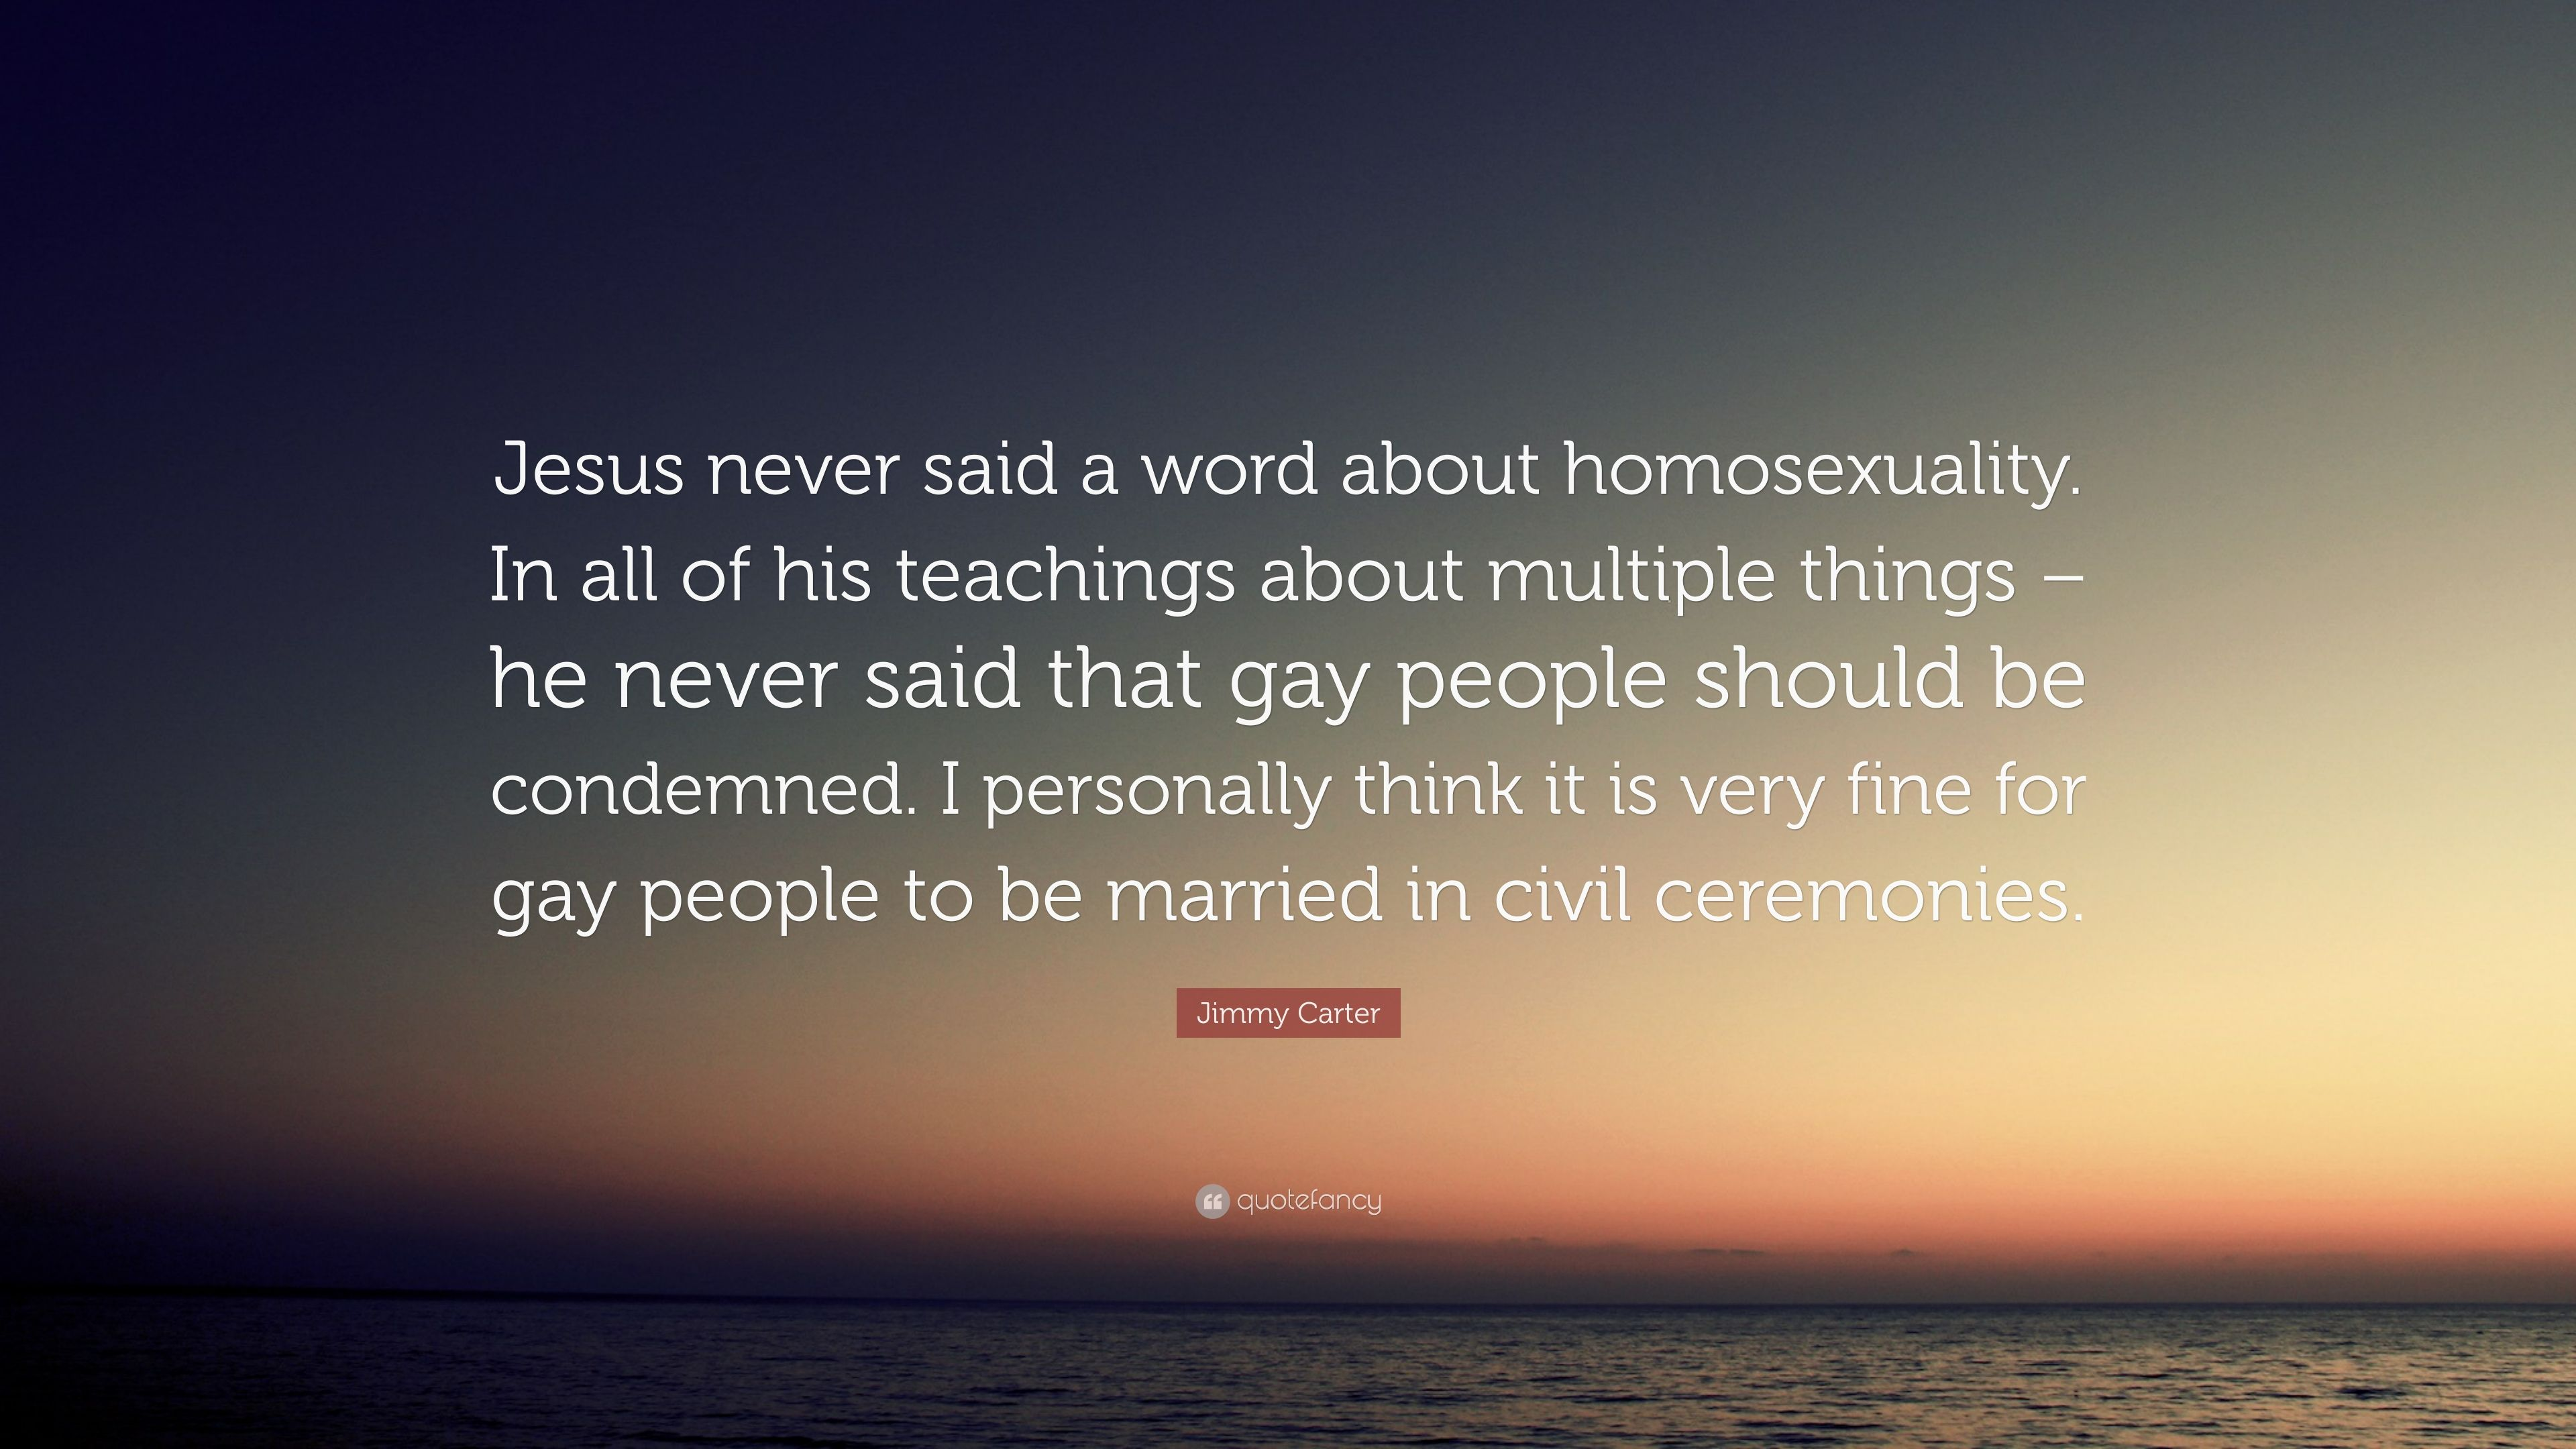 Quotes about homosexuality by jesus